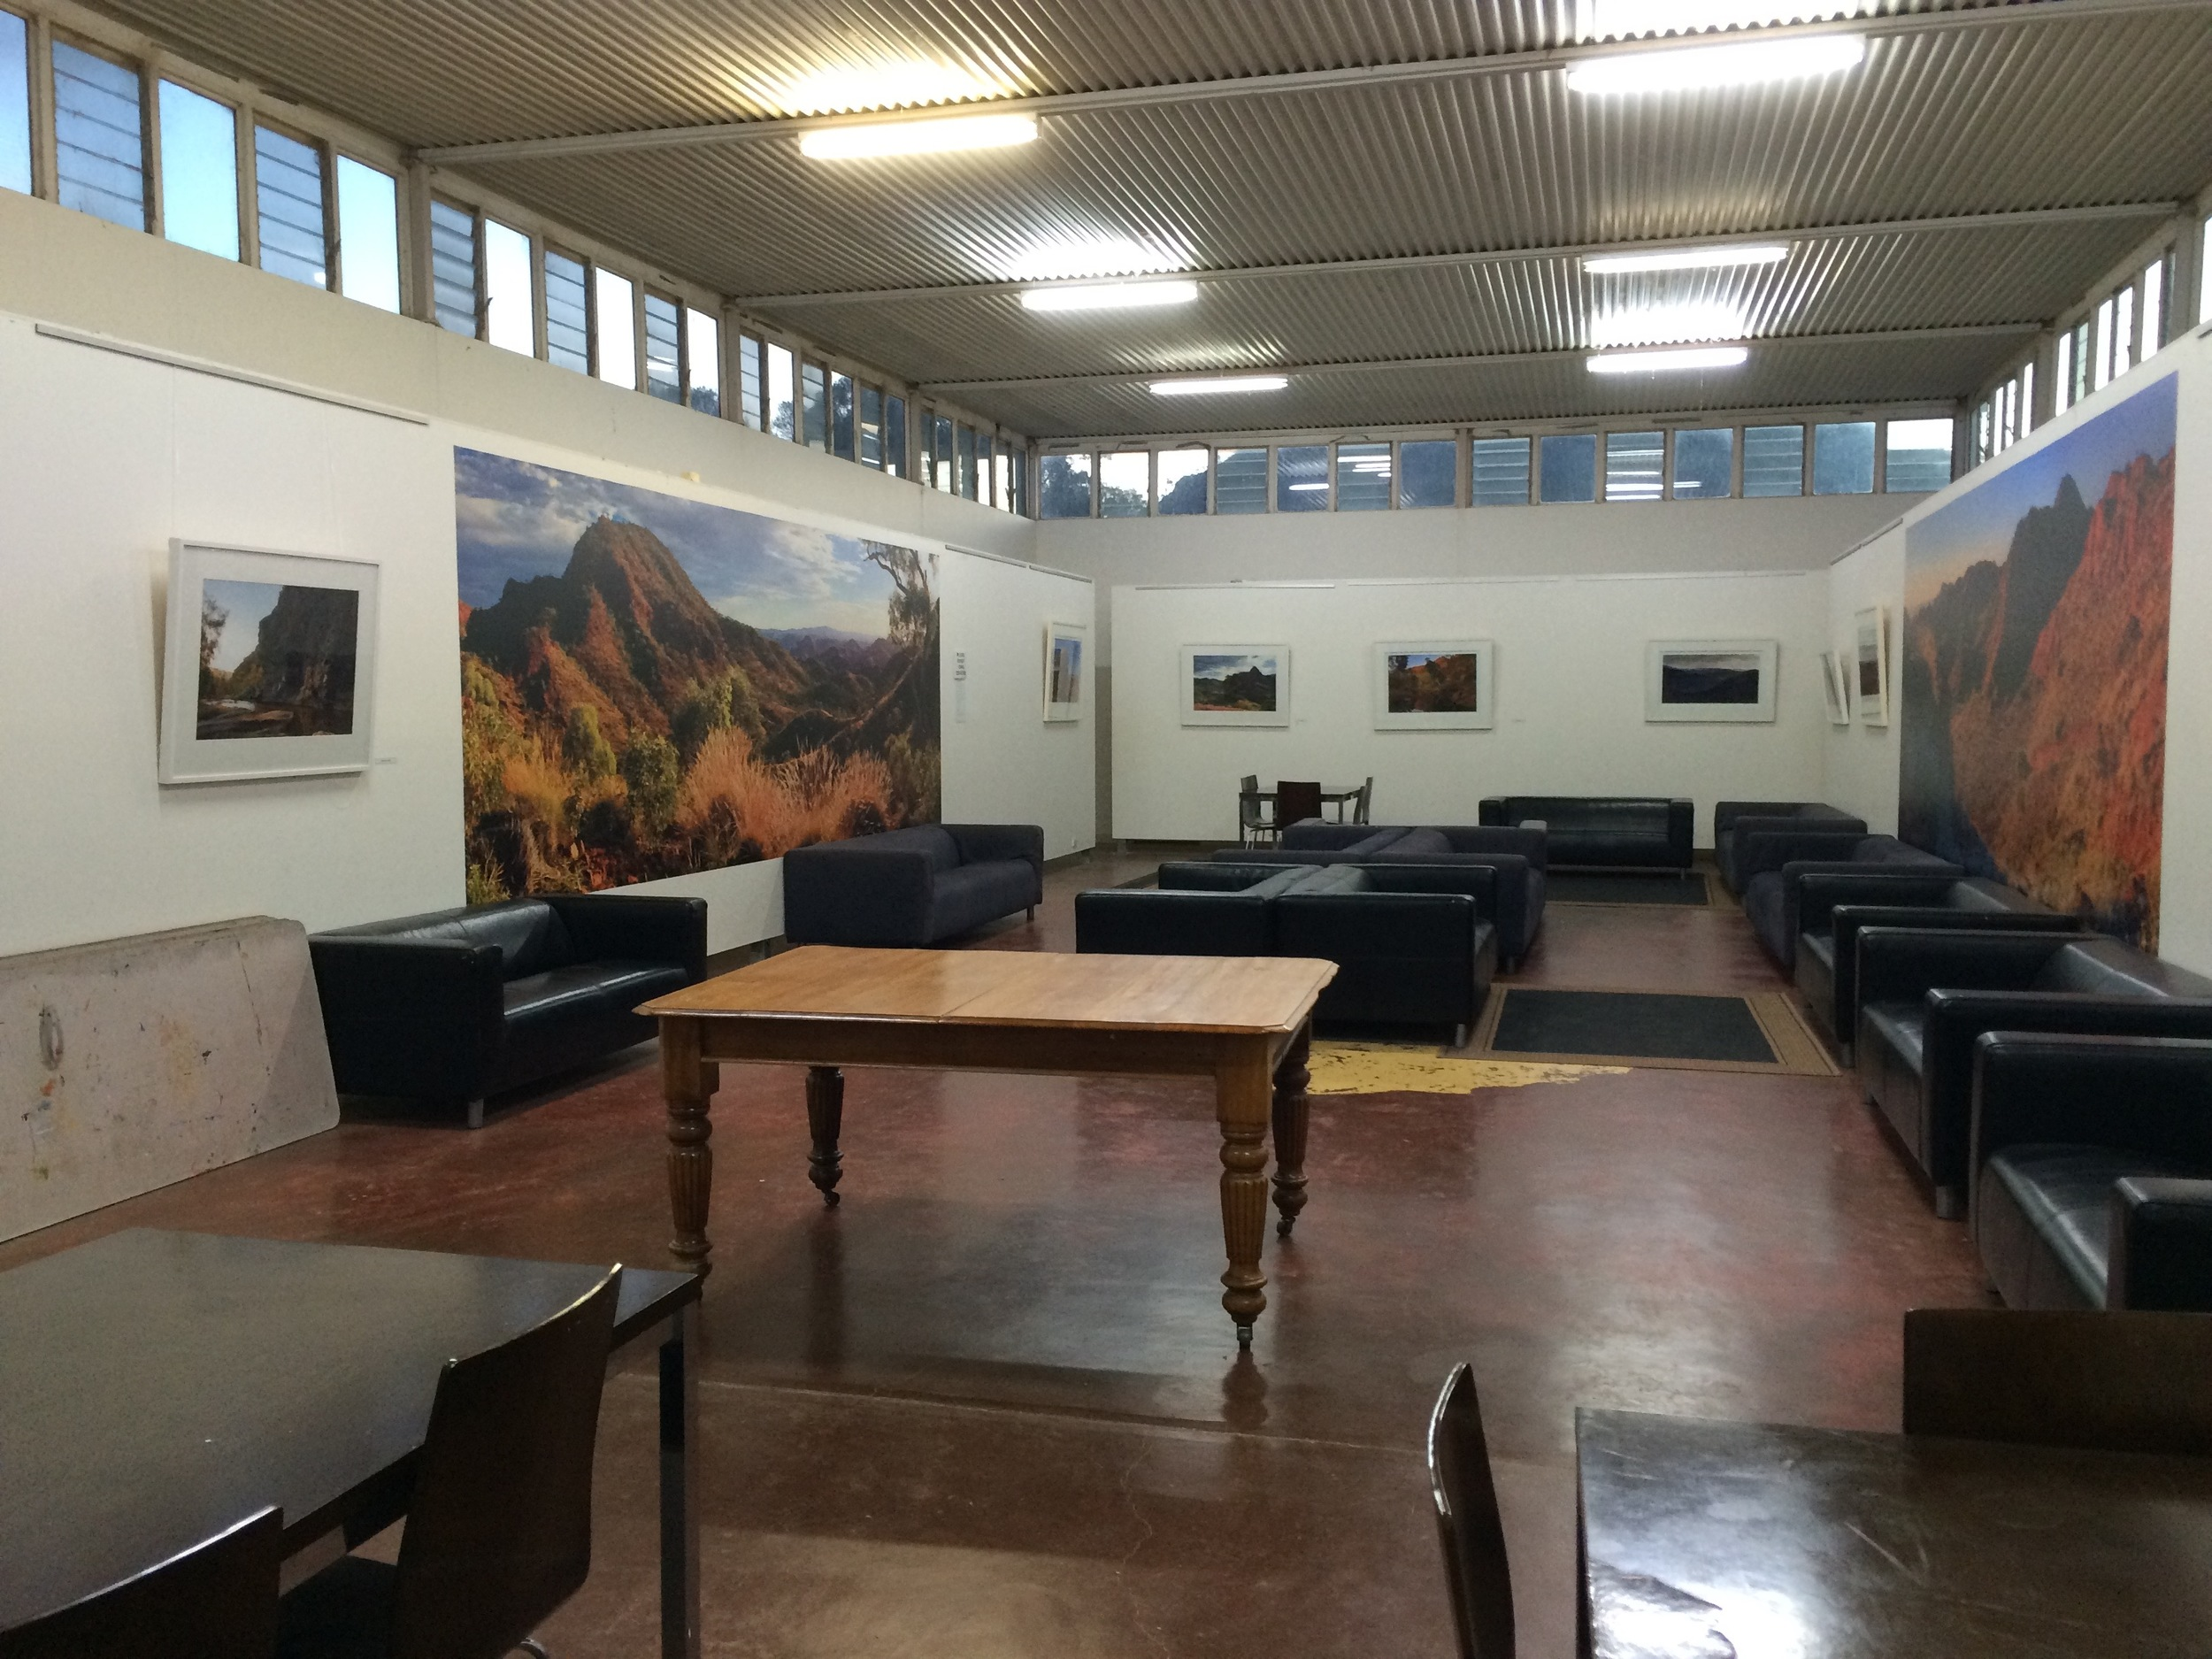 The Gallery at Arkaroola, this functions as a common room and dining area for visitors. It also became and excellent studio space for us during our stay.